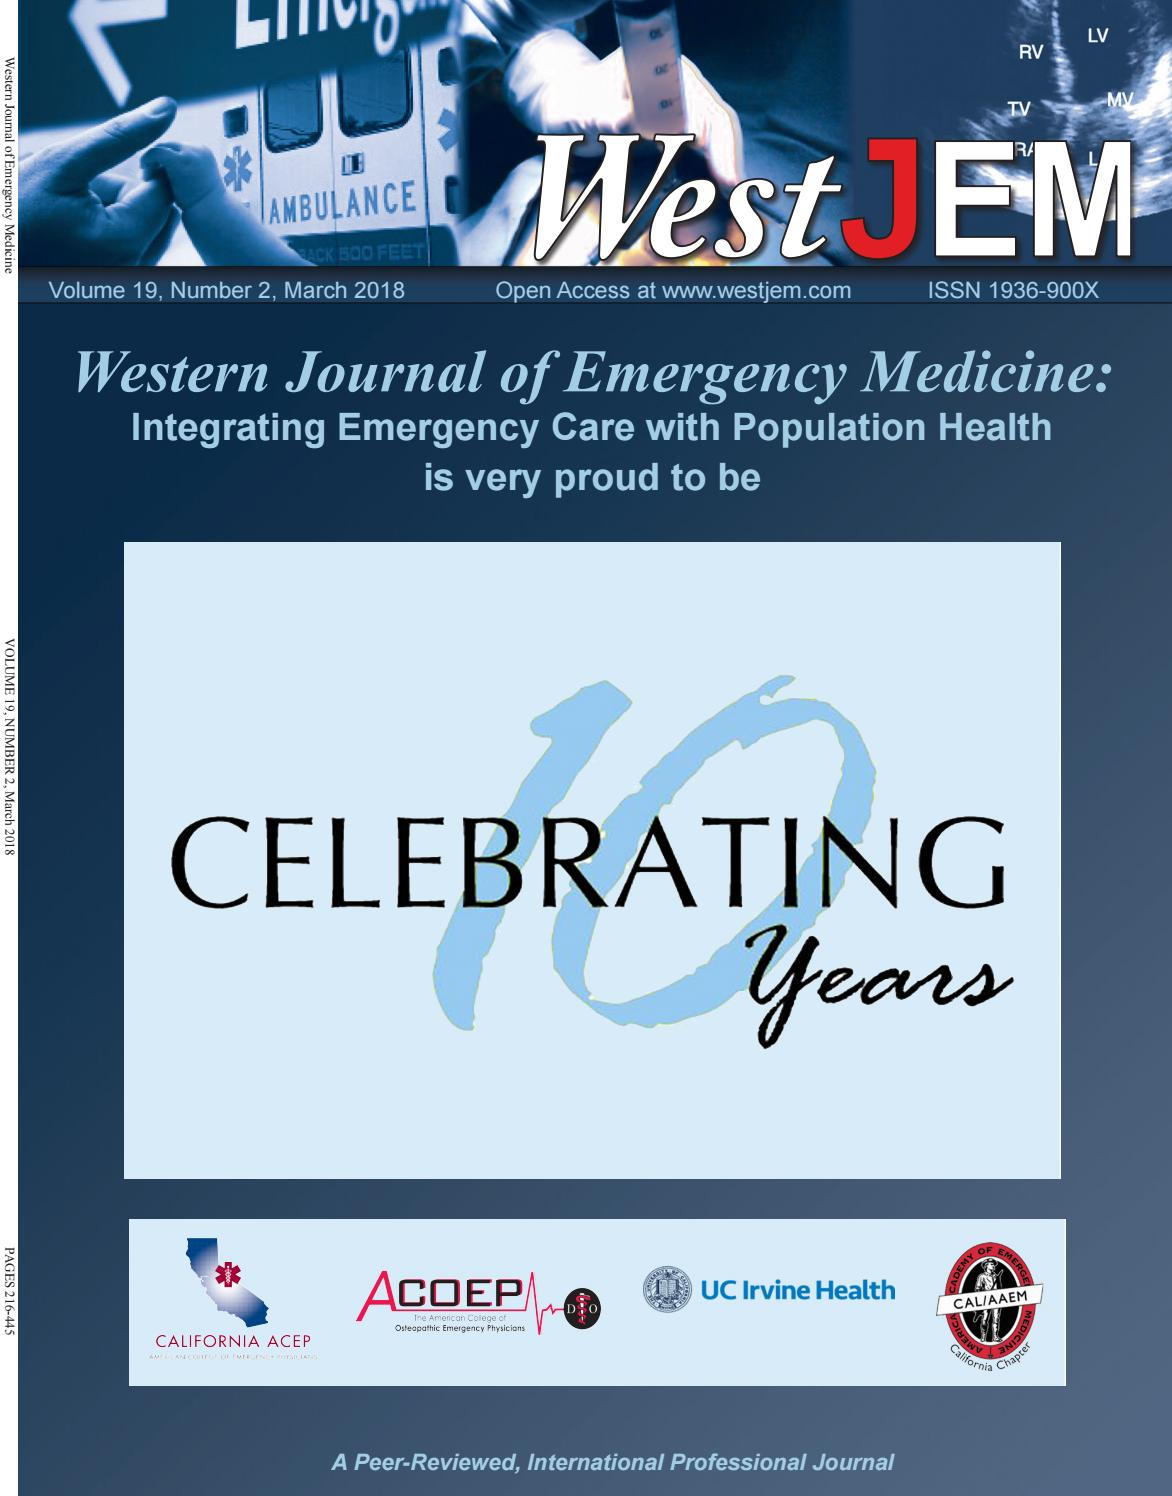 Volume 19 Issue 2 By Western Journal Of Emergency Medicine Issuu Wiring Diagram Meyer 36244